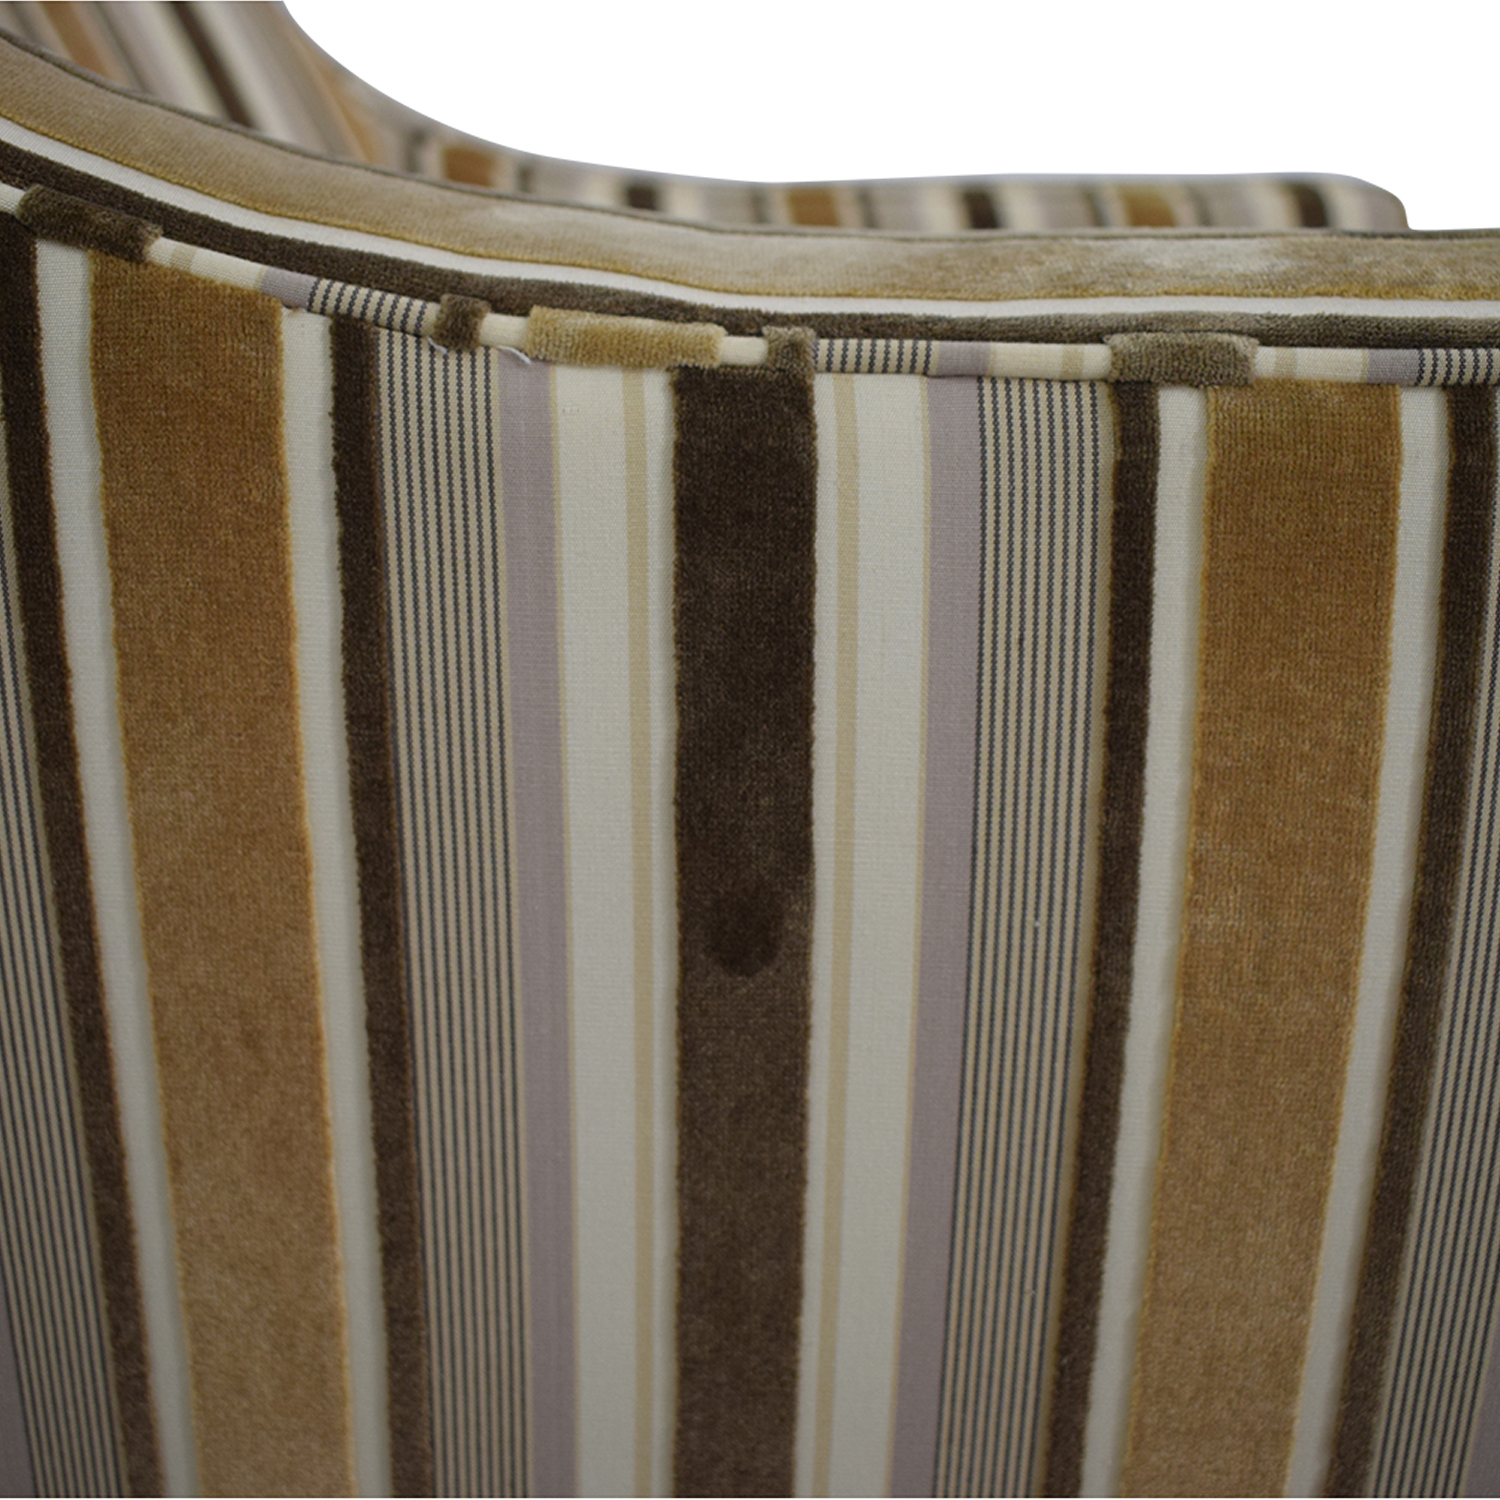 Robert Allen Robert Allen Beige and Brown Striped Accent Chair and Ottoman Multicolor